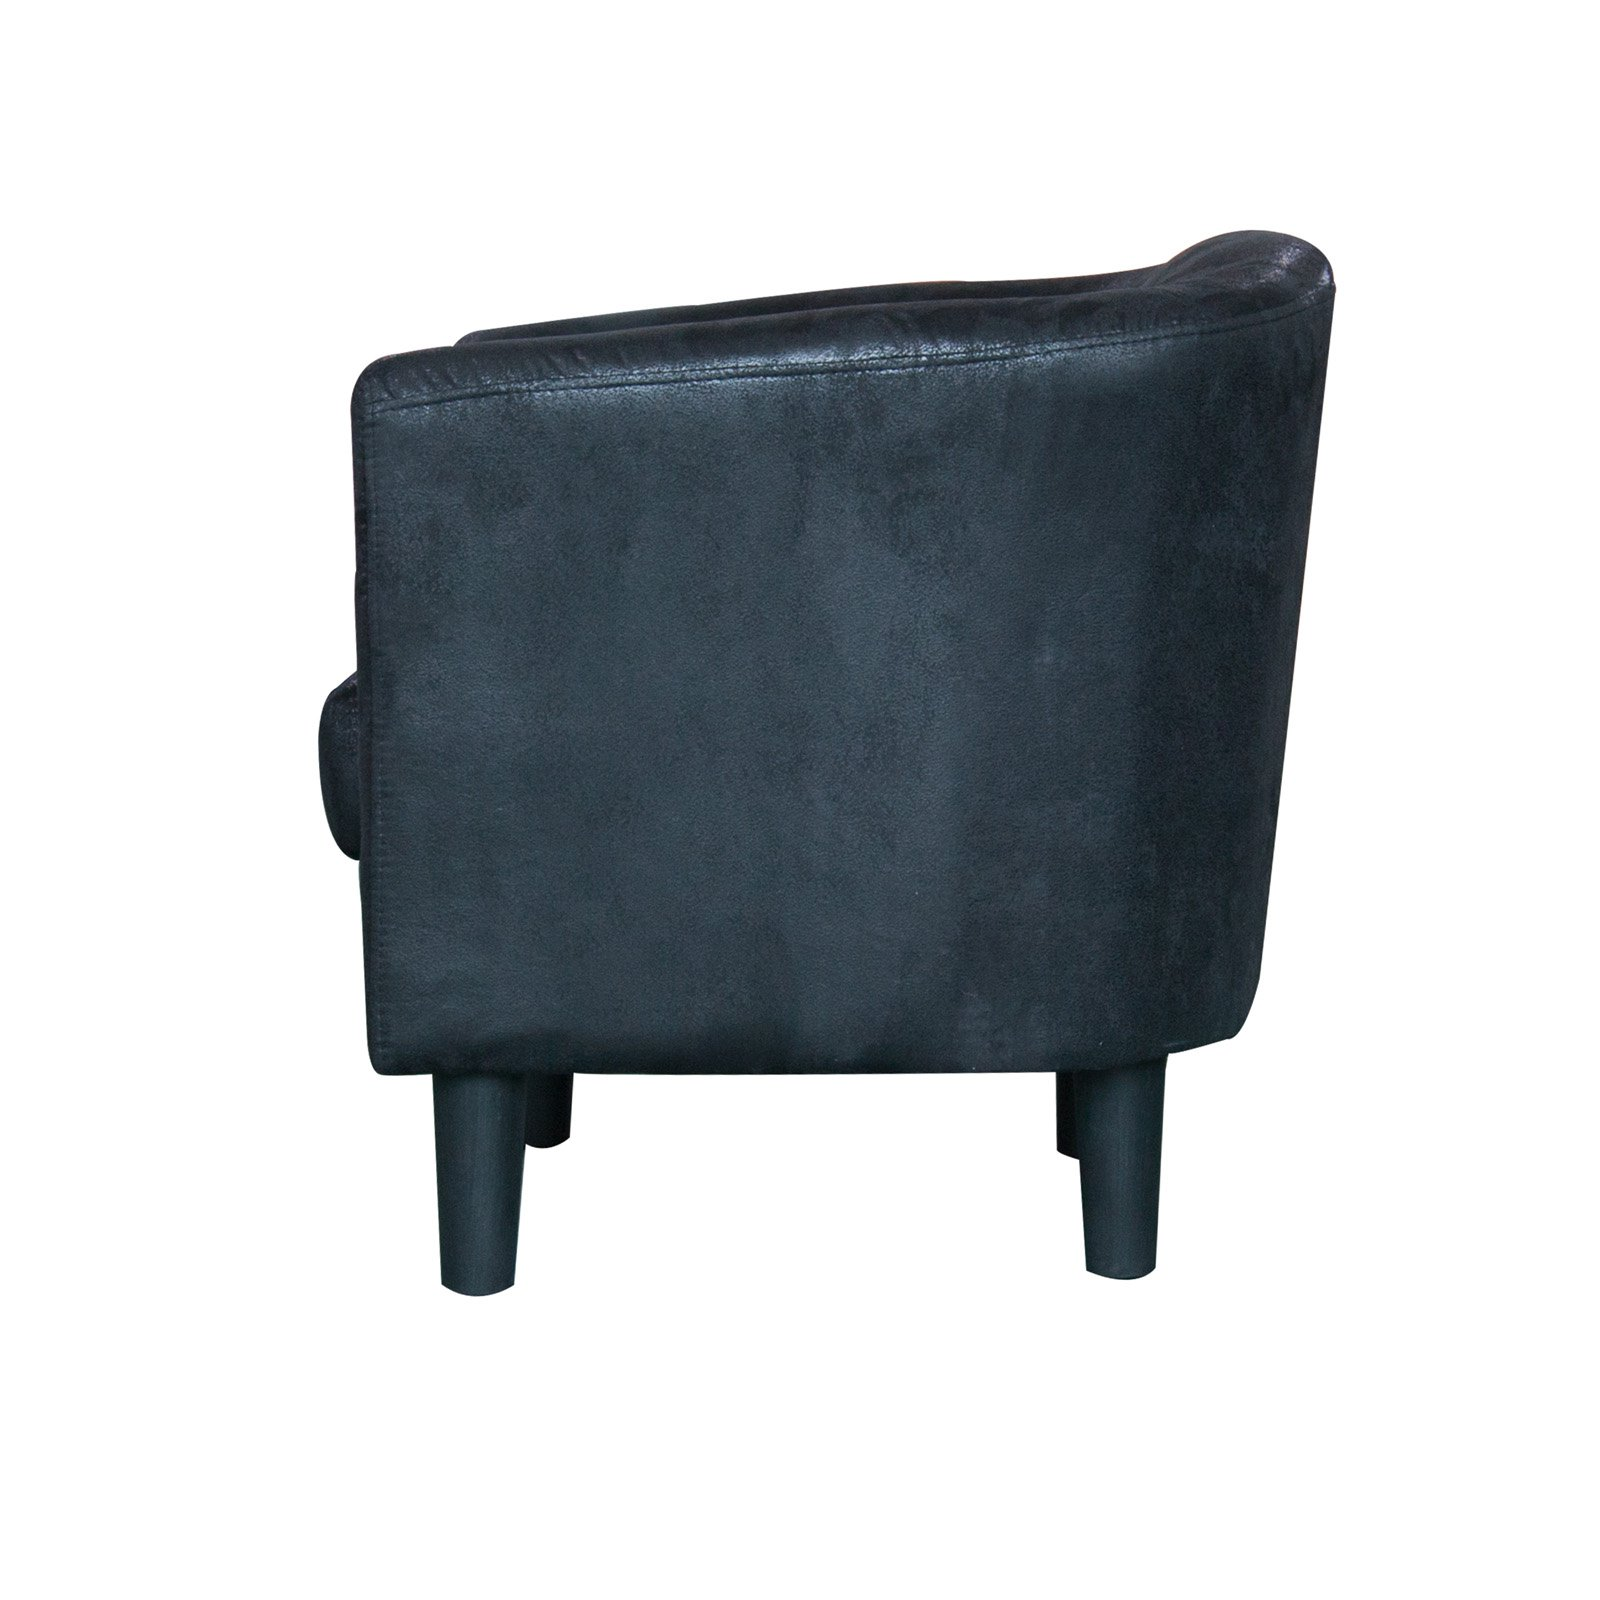 Prime Incadozo Barrel Style Accent Chair Bralicious Painted Fabric Chair Ideas Braliciousco